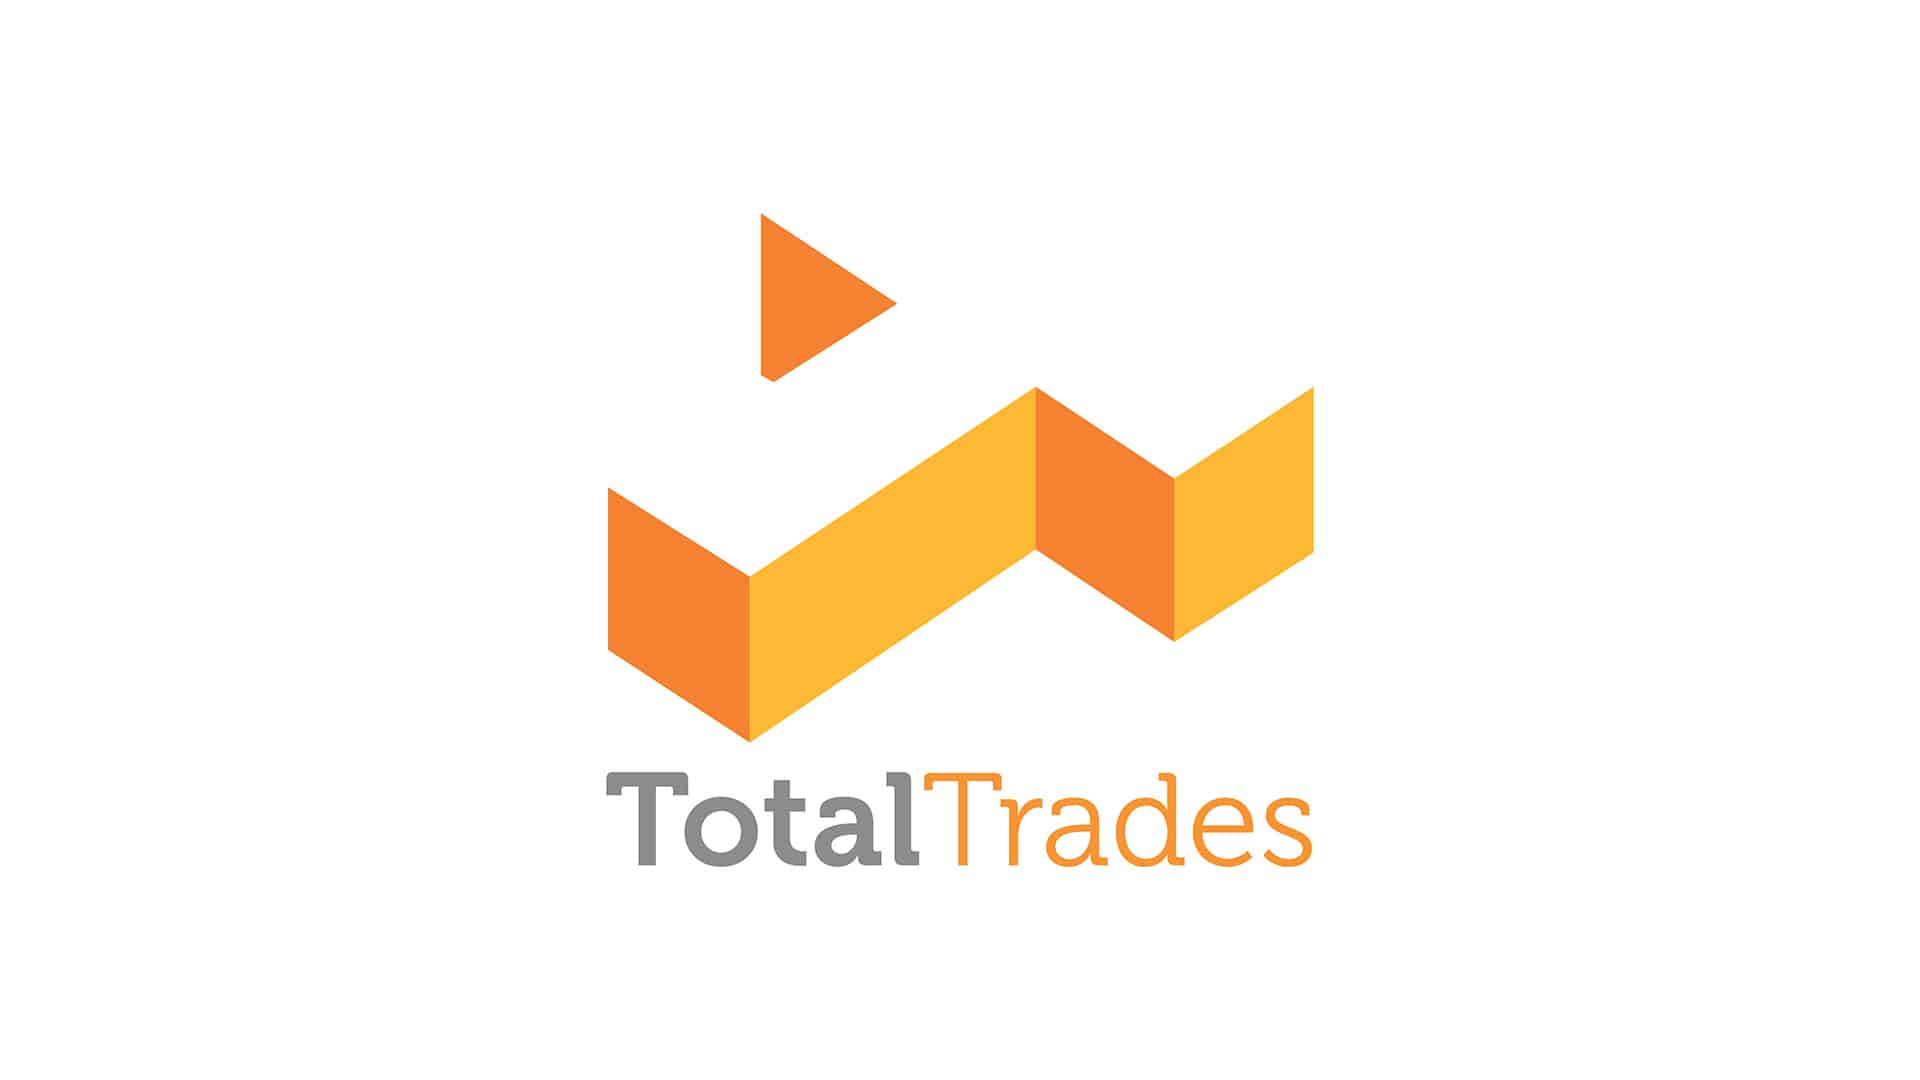 Total Trades Image 1